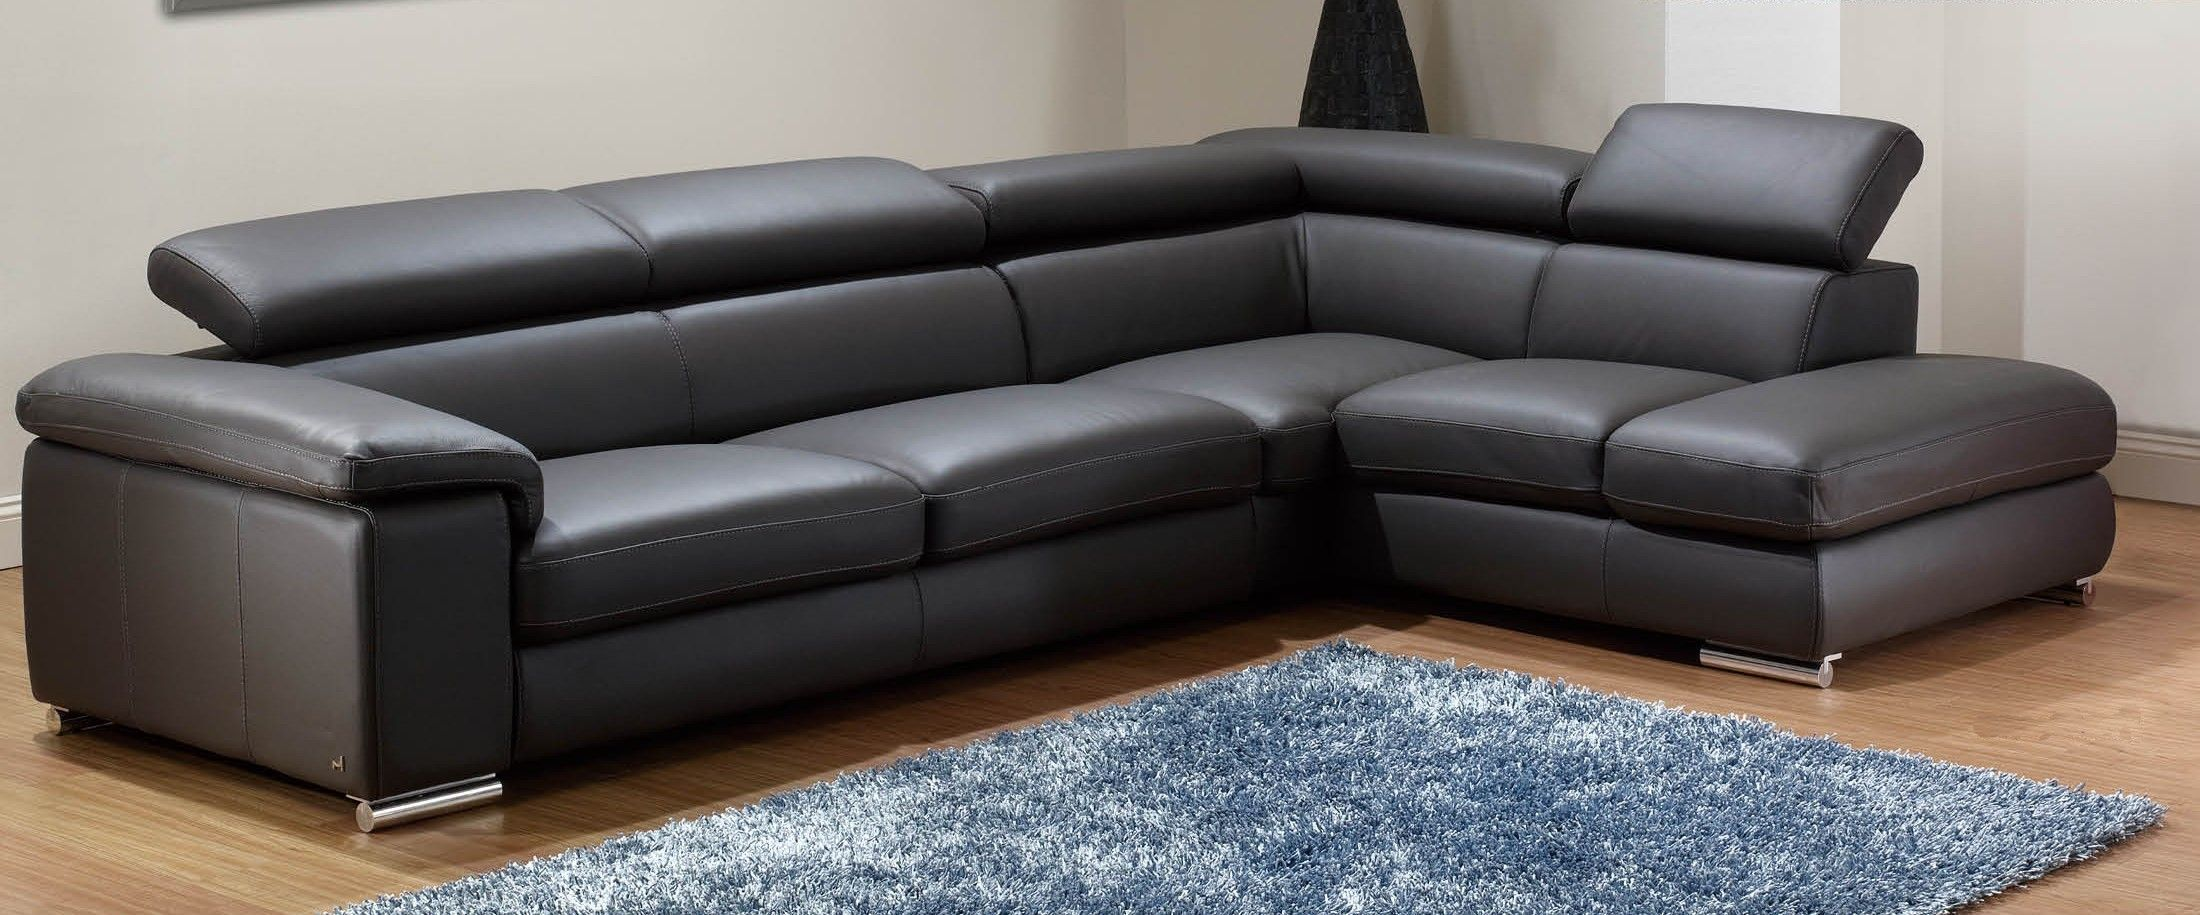 contemporary furniture sofa. awesome modern leather sectional sofa epic 19 in sofas and couches contemporary furniture d